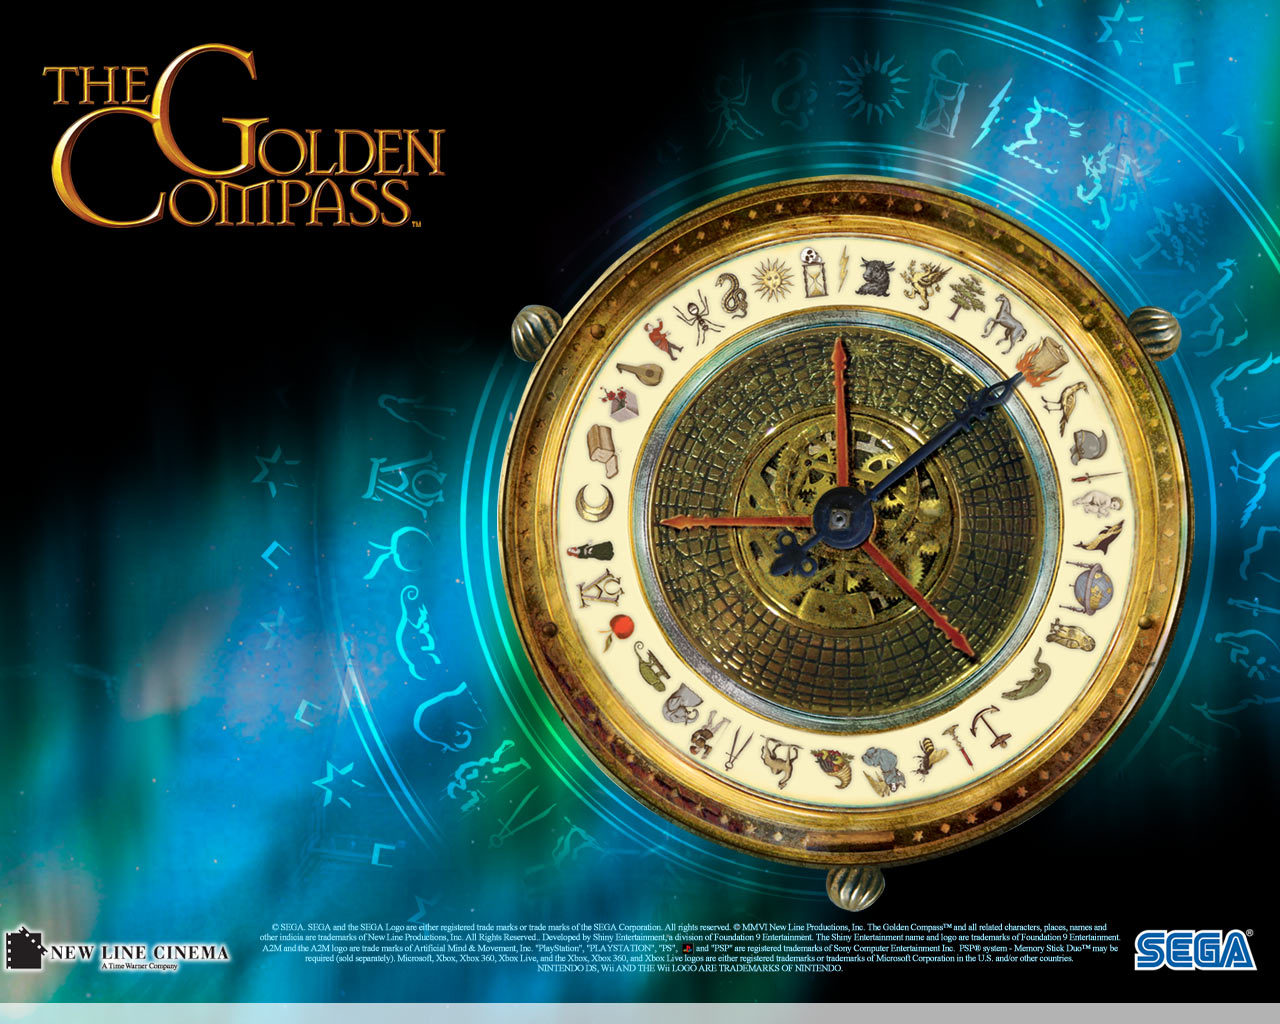 film critique for the golden compass On dec 7 new line cinema will release the golden compass, starring  nicole kidman and daniel craig, the first movie in a trilogy with the.